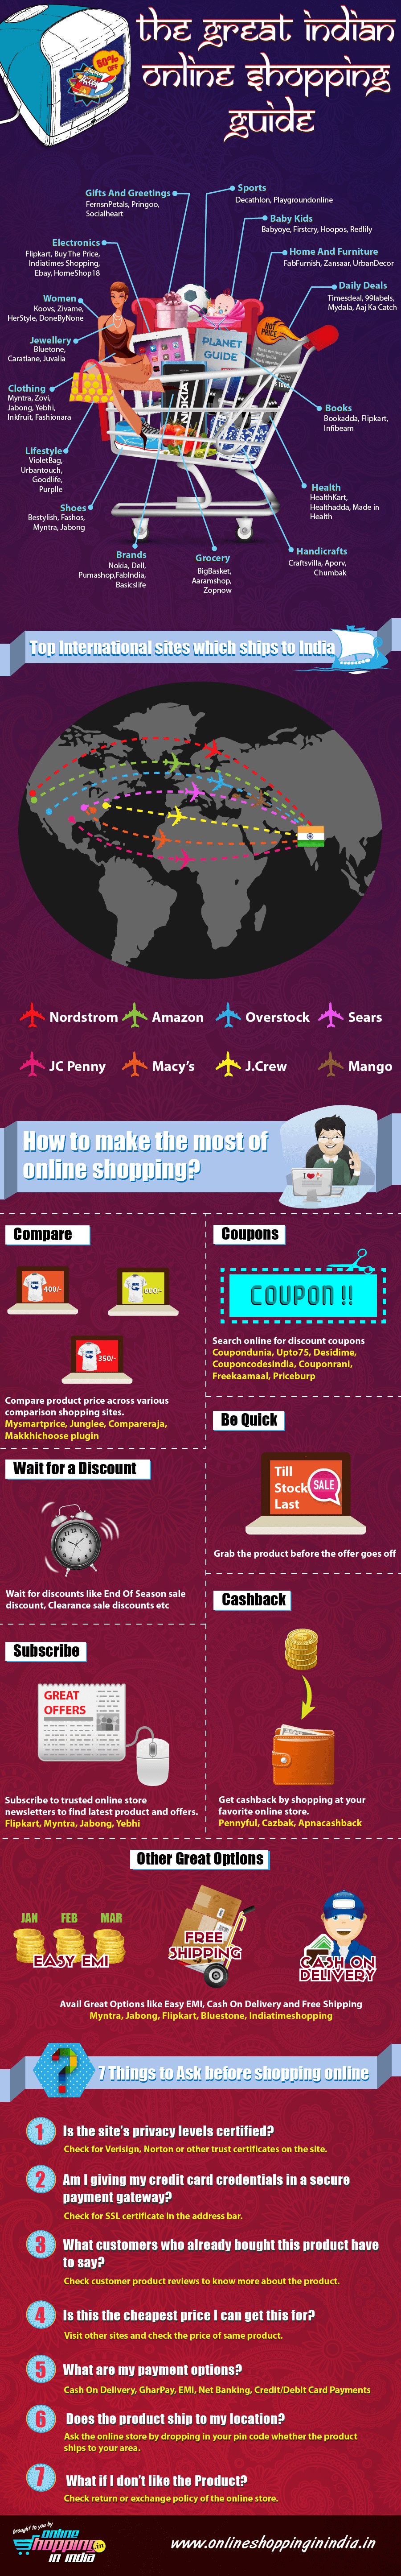 the-great-indian-online-shopping-guide-infographic